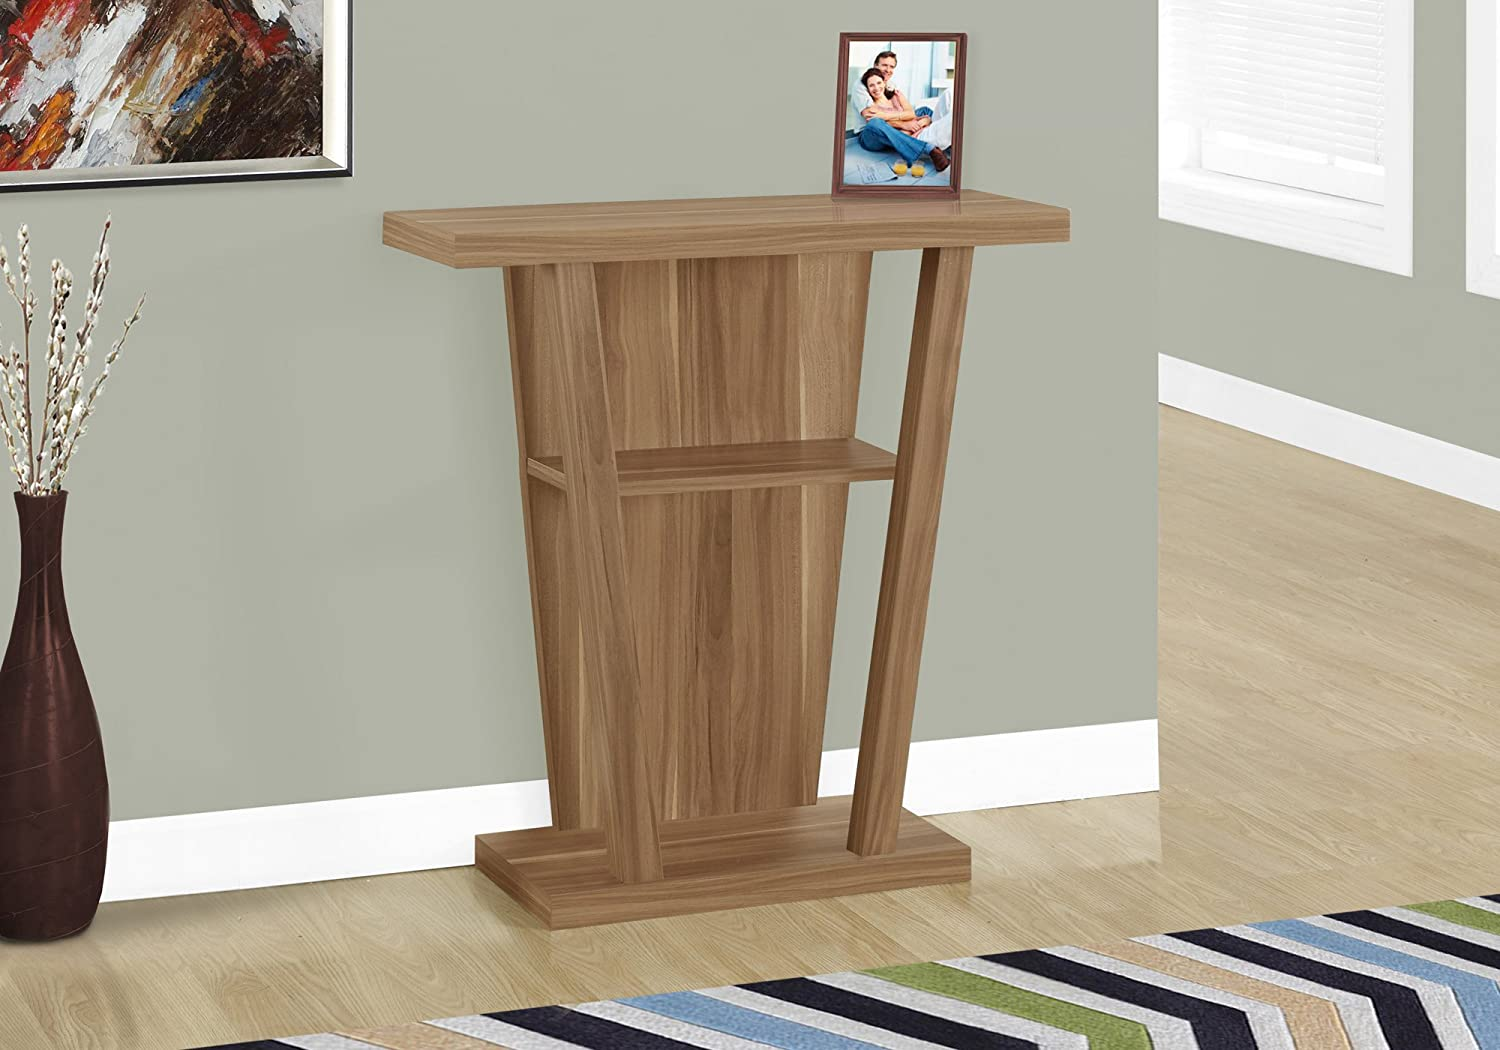 Walnut Monarch Specialties I 2453 Accent Table 32  L Hall Console, Dark Taupe